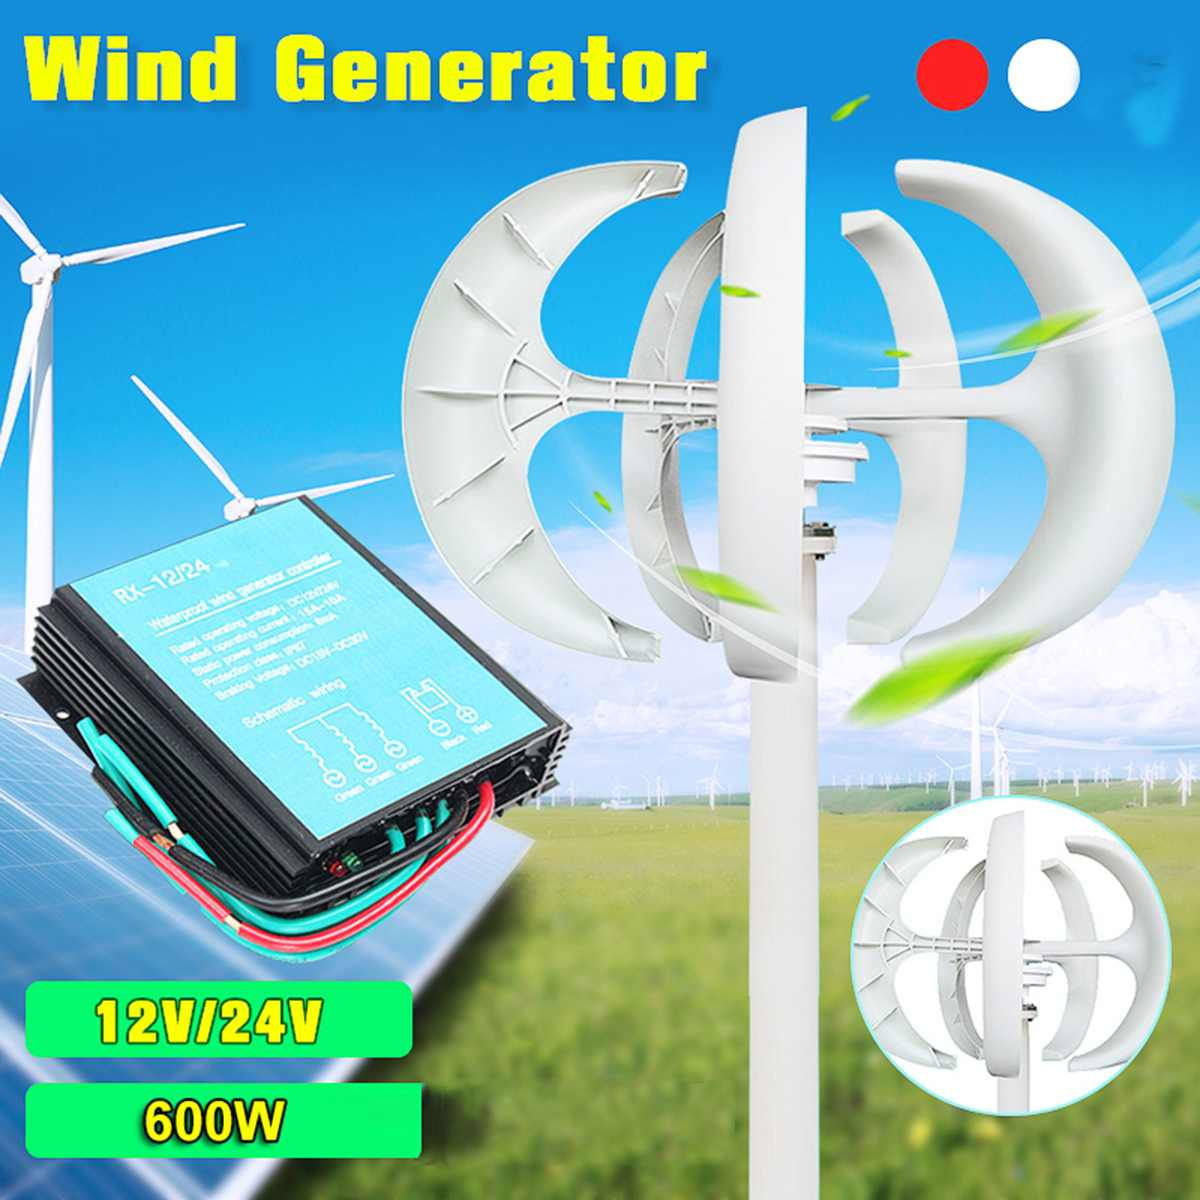 100w/200w/300w/600W 12 24V Vertical Axis Wind Turbine Generator VAWT Boat Garden with Controller Home Residential Use